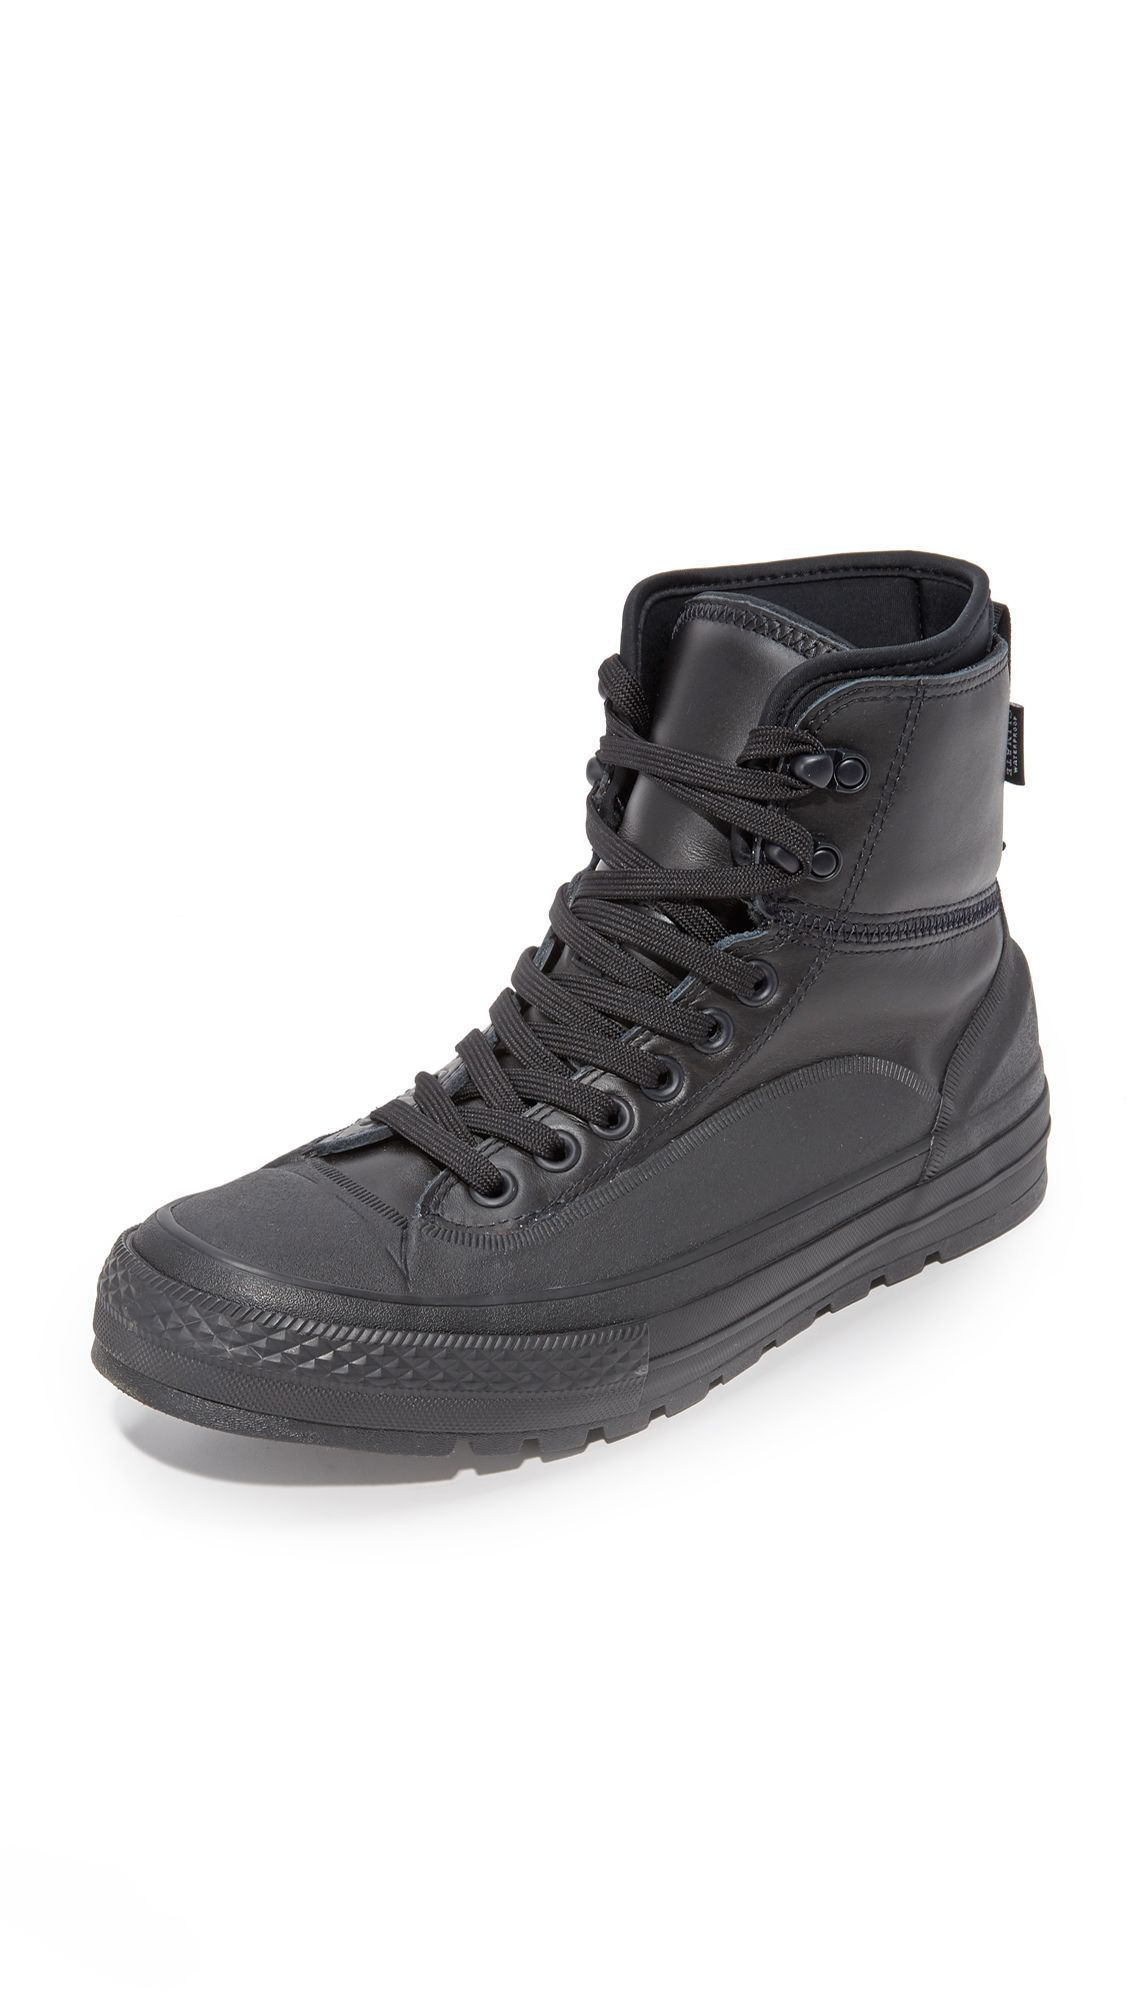 9fa0a1f0f4aefe CONVERSE Chuck Taylor Waterproof All Star Tekoa Boots.  converse  shoes   boots